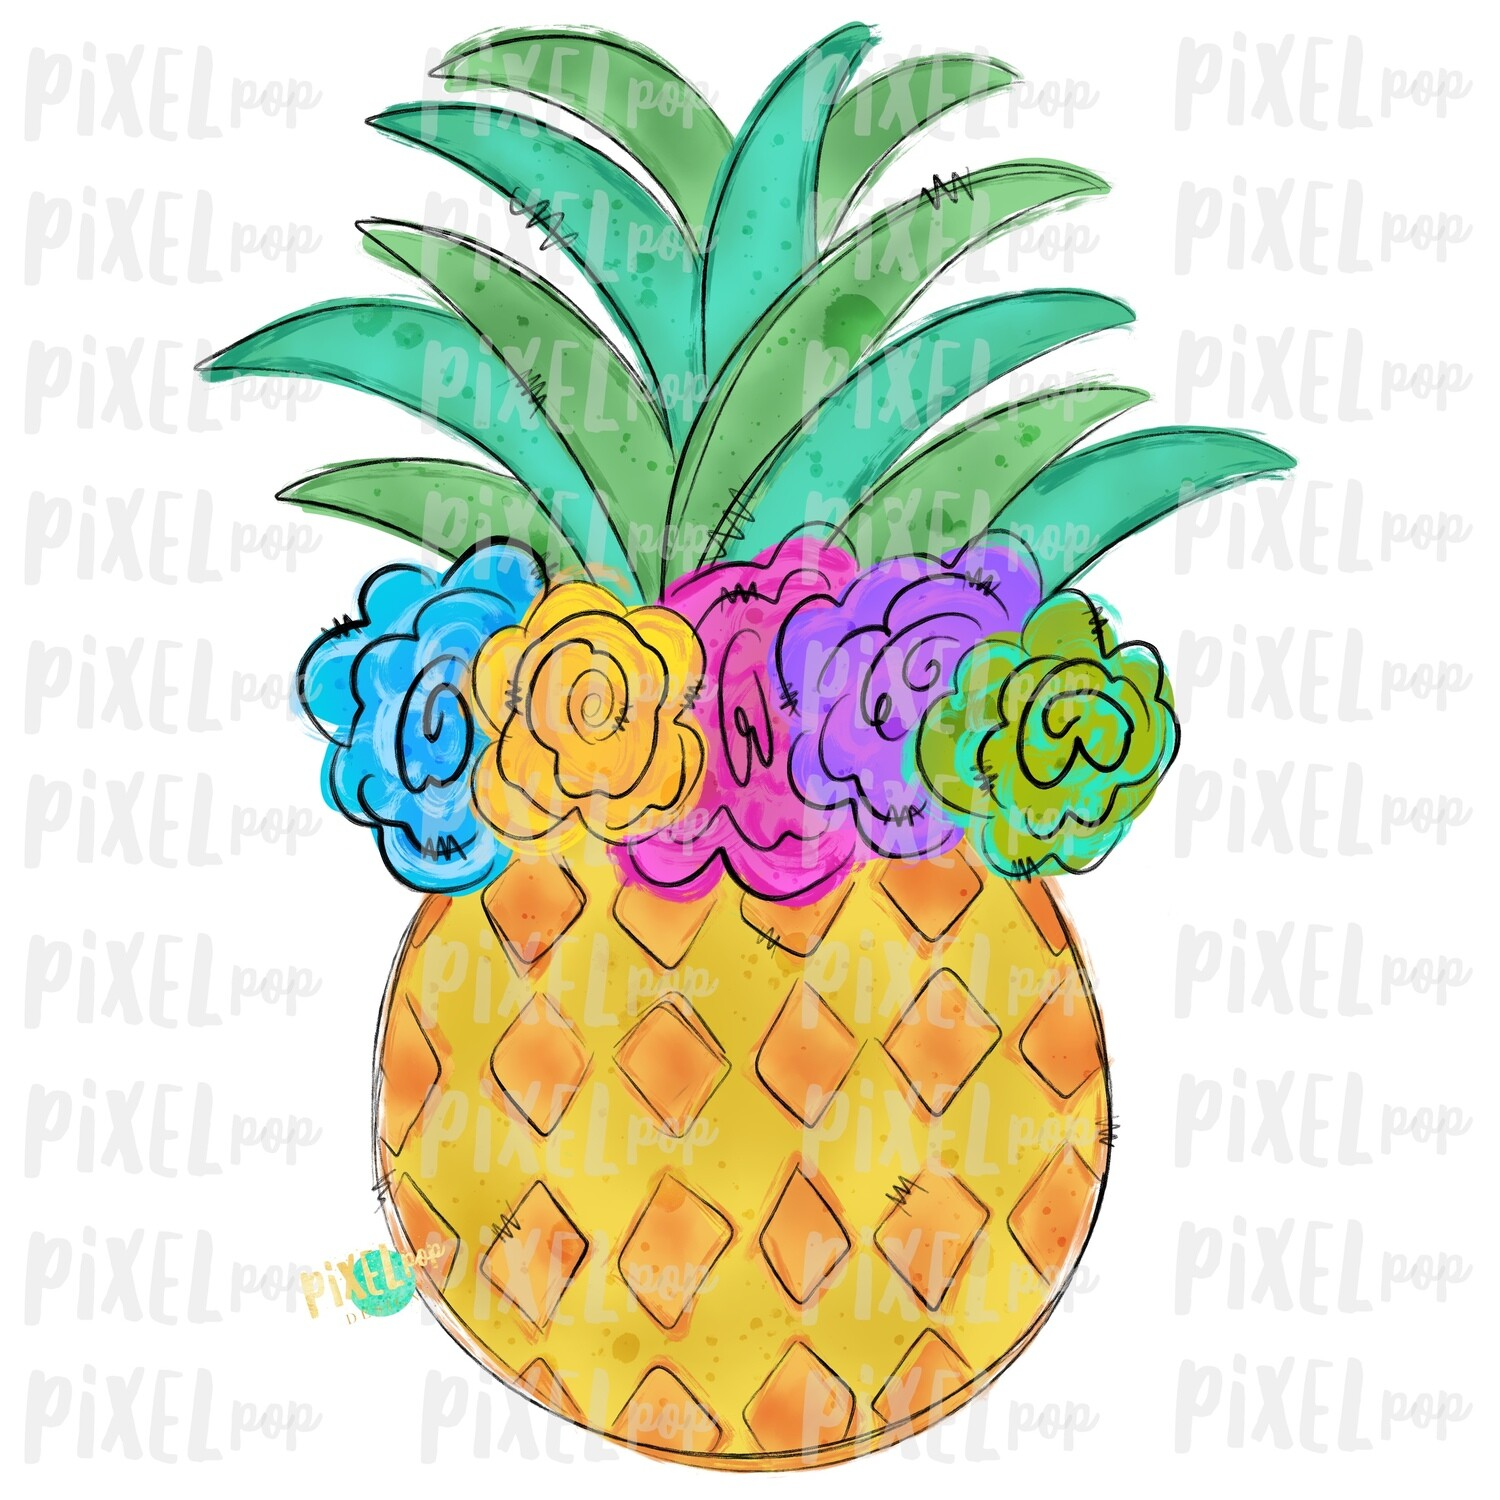 Pineapple with Flower Crown Design | Sublimation | Fruit | Hand Drawn PNG | Sublimation PNG | Digital Download | Printable Art | Clip Art